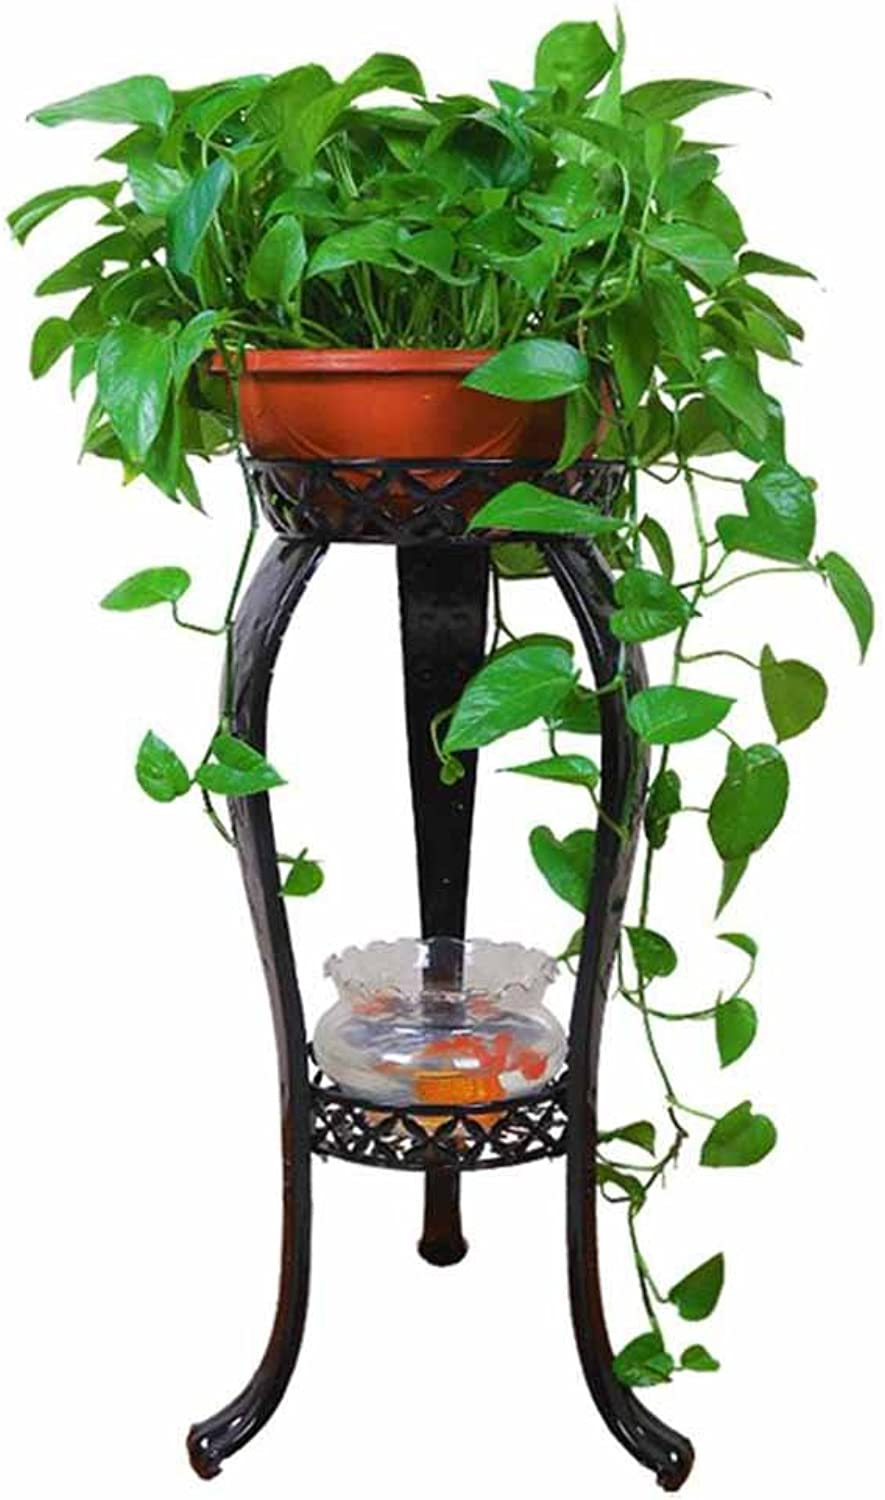 SYF Simple Modern Black 2 Layer Flower Stand   European Iron Living Room Balcony Flower Pot Shelf 40x81cm A+